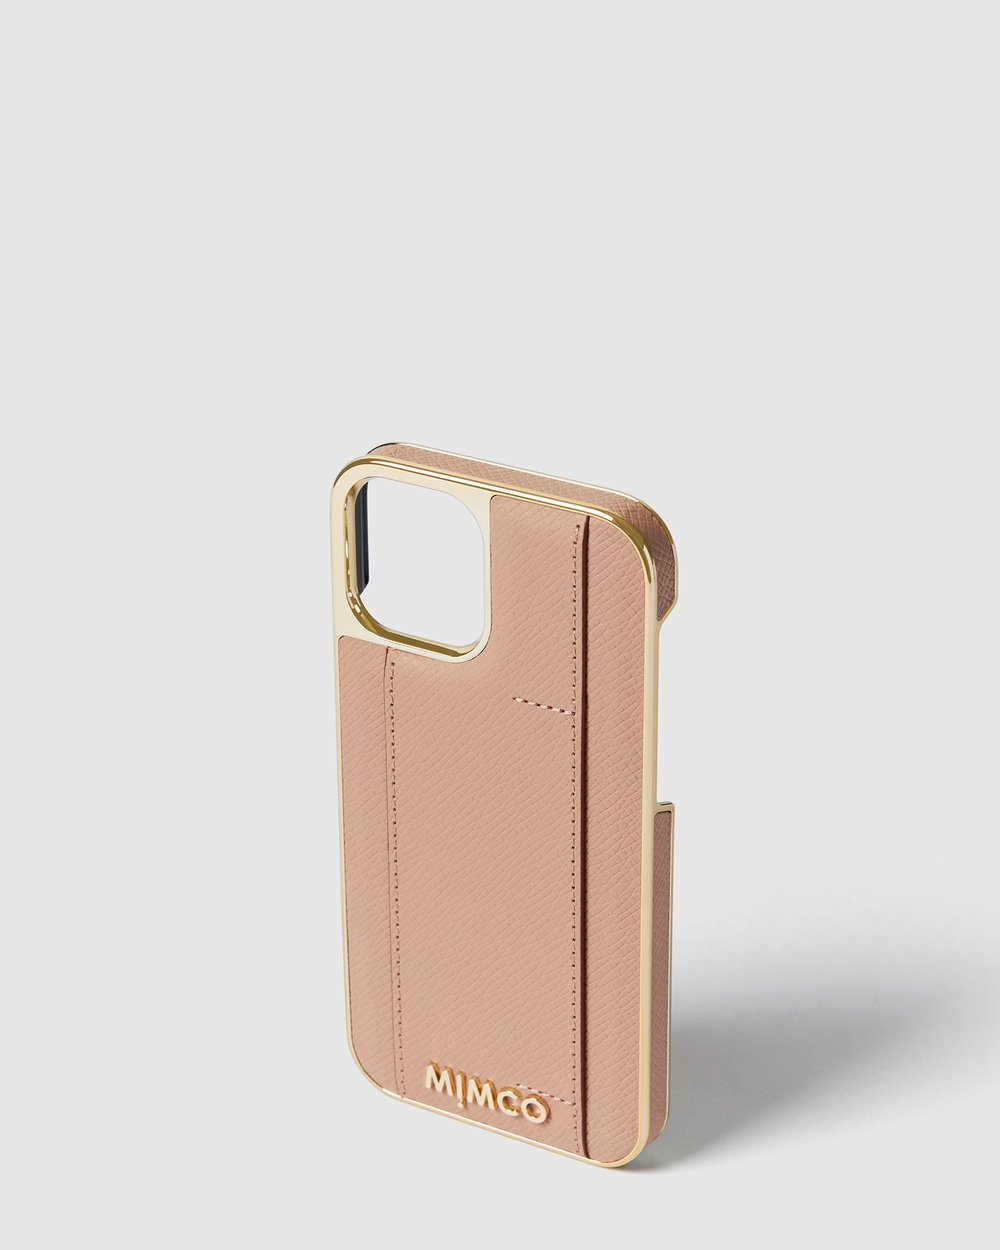 MIMCO Classico Card Hard Case For Iphone 12 Pro Tech Accessories brown 12-12